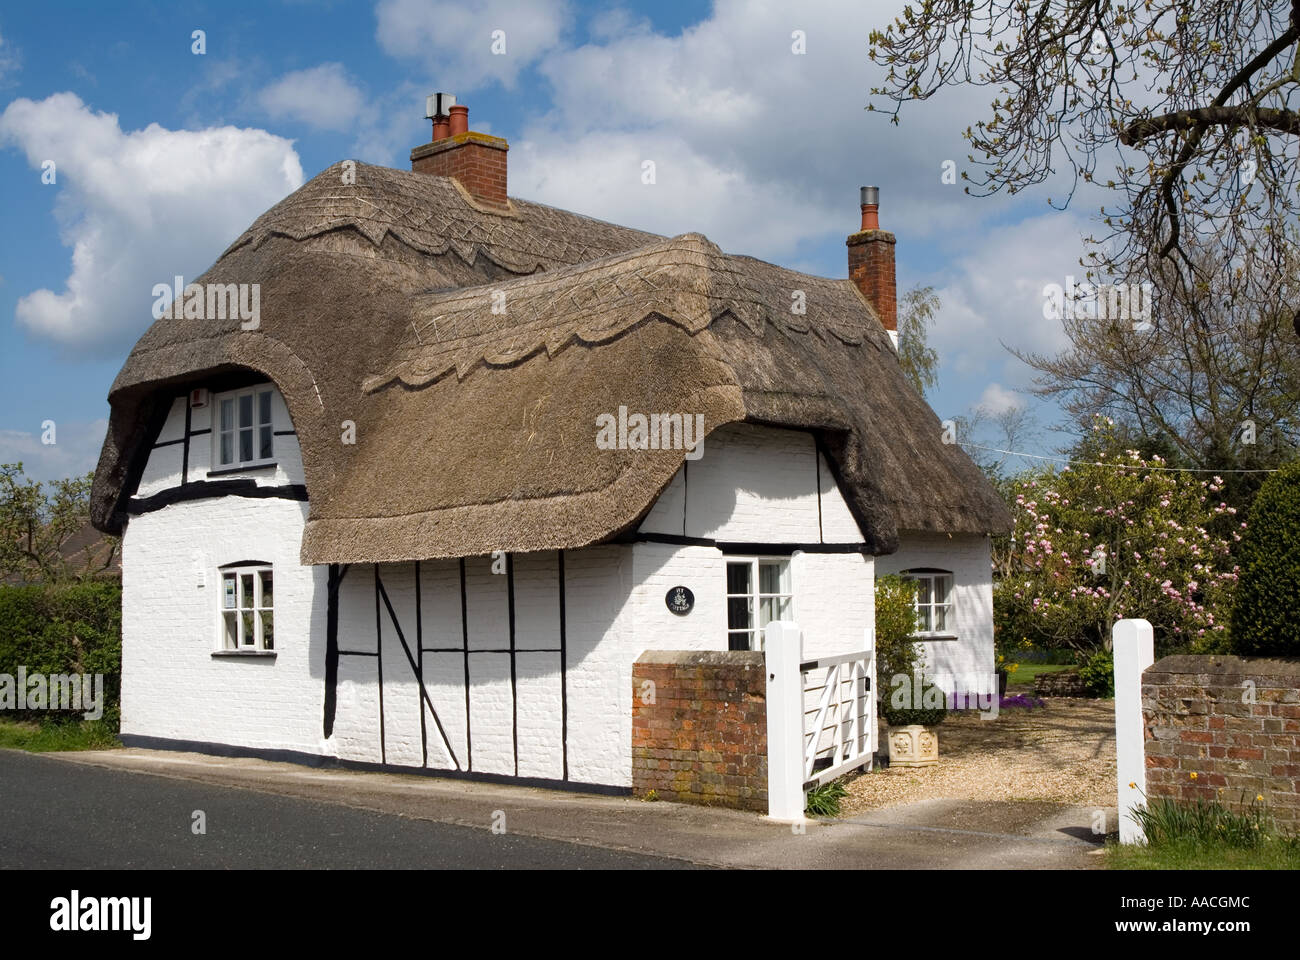 A typical traditional English country thatched house / cottage with white walls & black beams in Milton Keynes Village - Stock Image